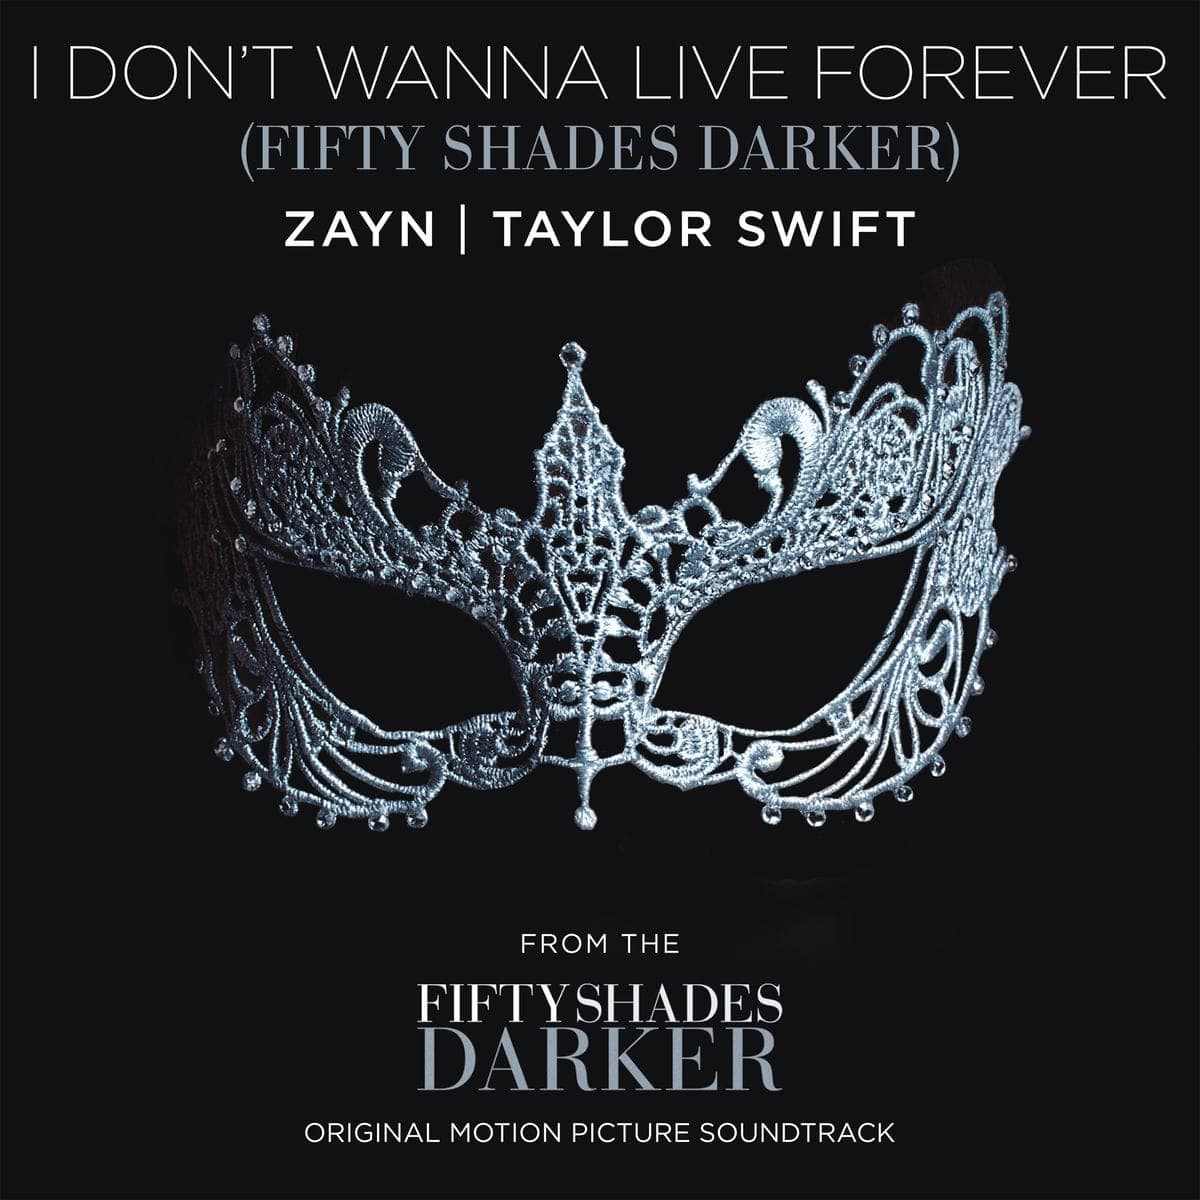 I Don't Wanna Live Forever - Zayn & Taylor Swift